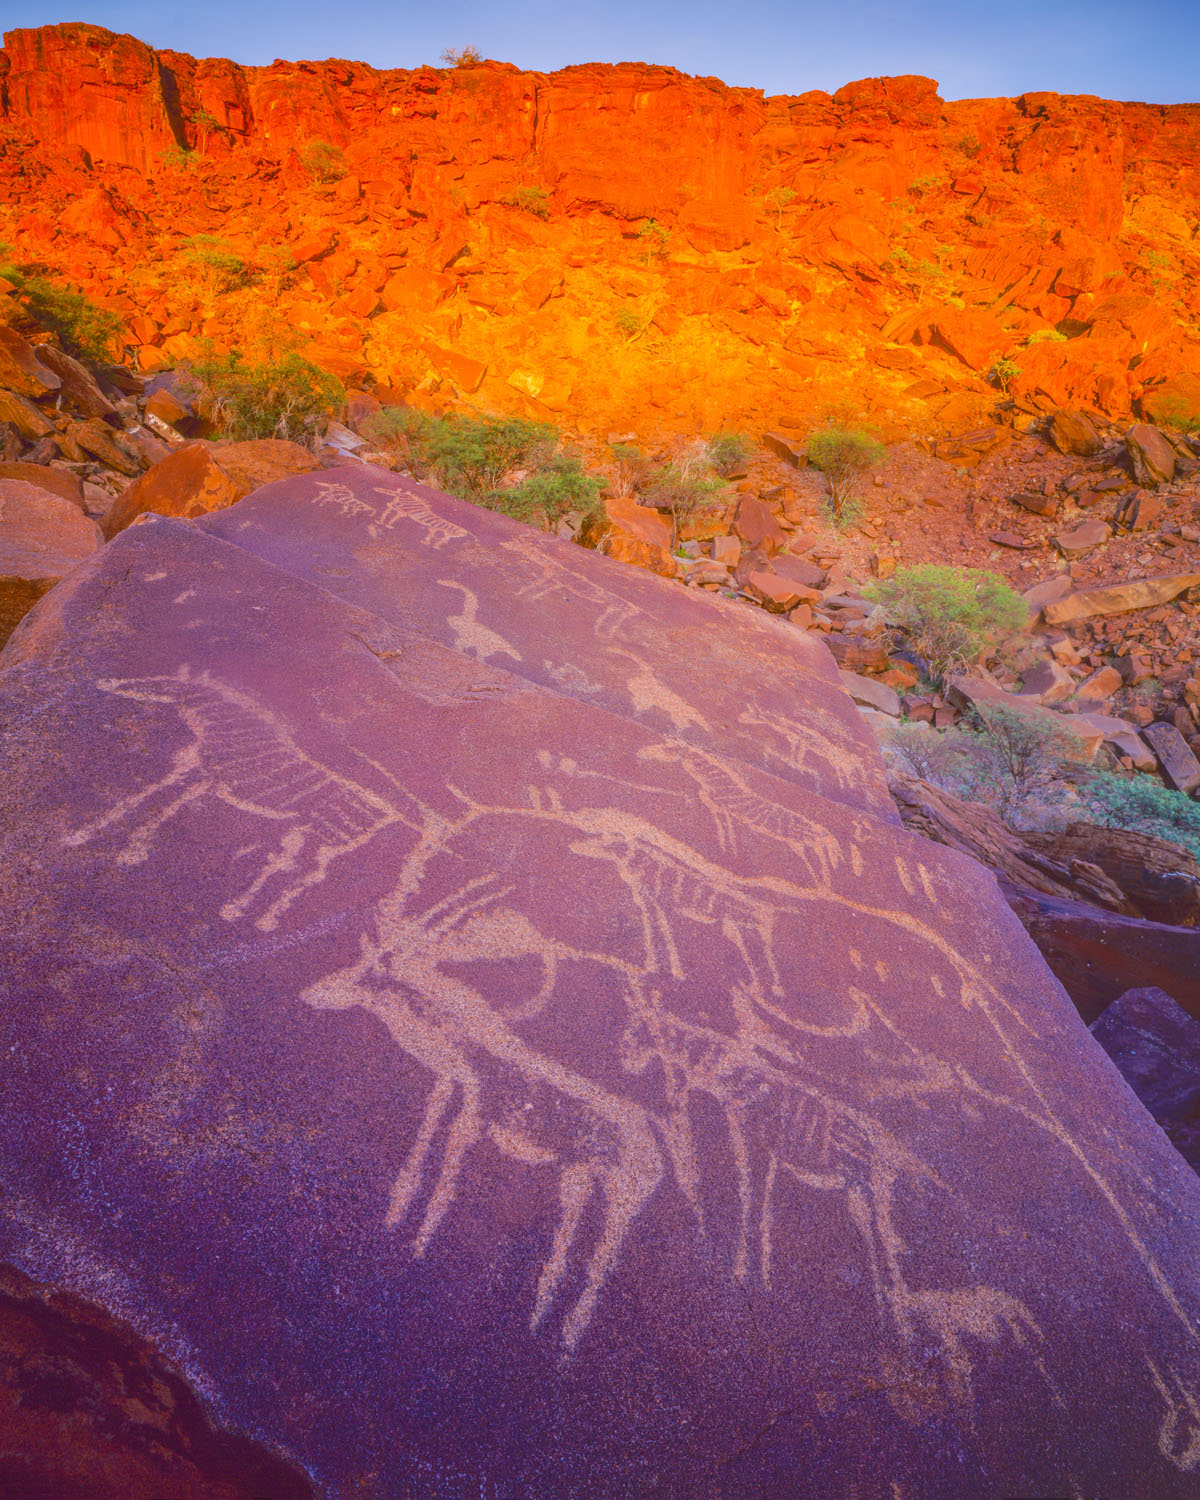 petroglyphs, Twyfelfontein Mountains, Namibia photographed by Tom Till